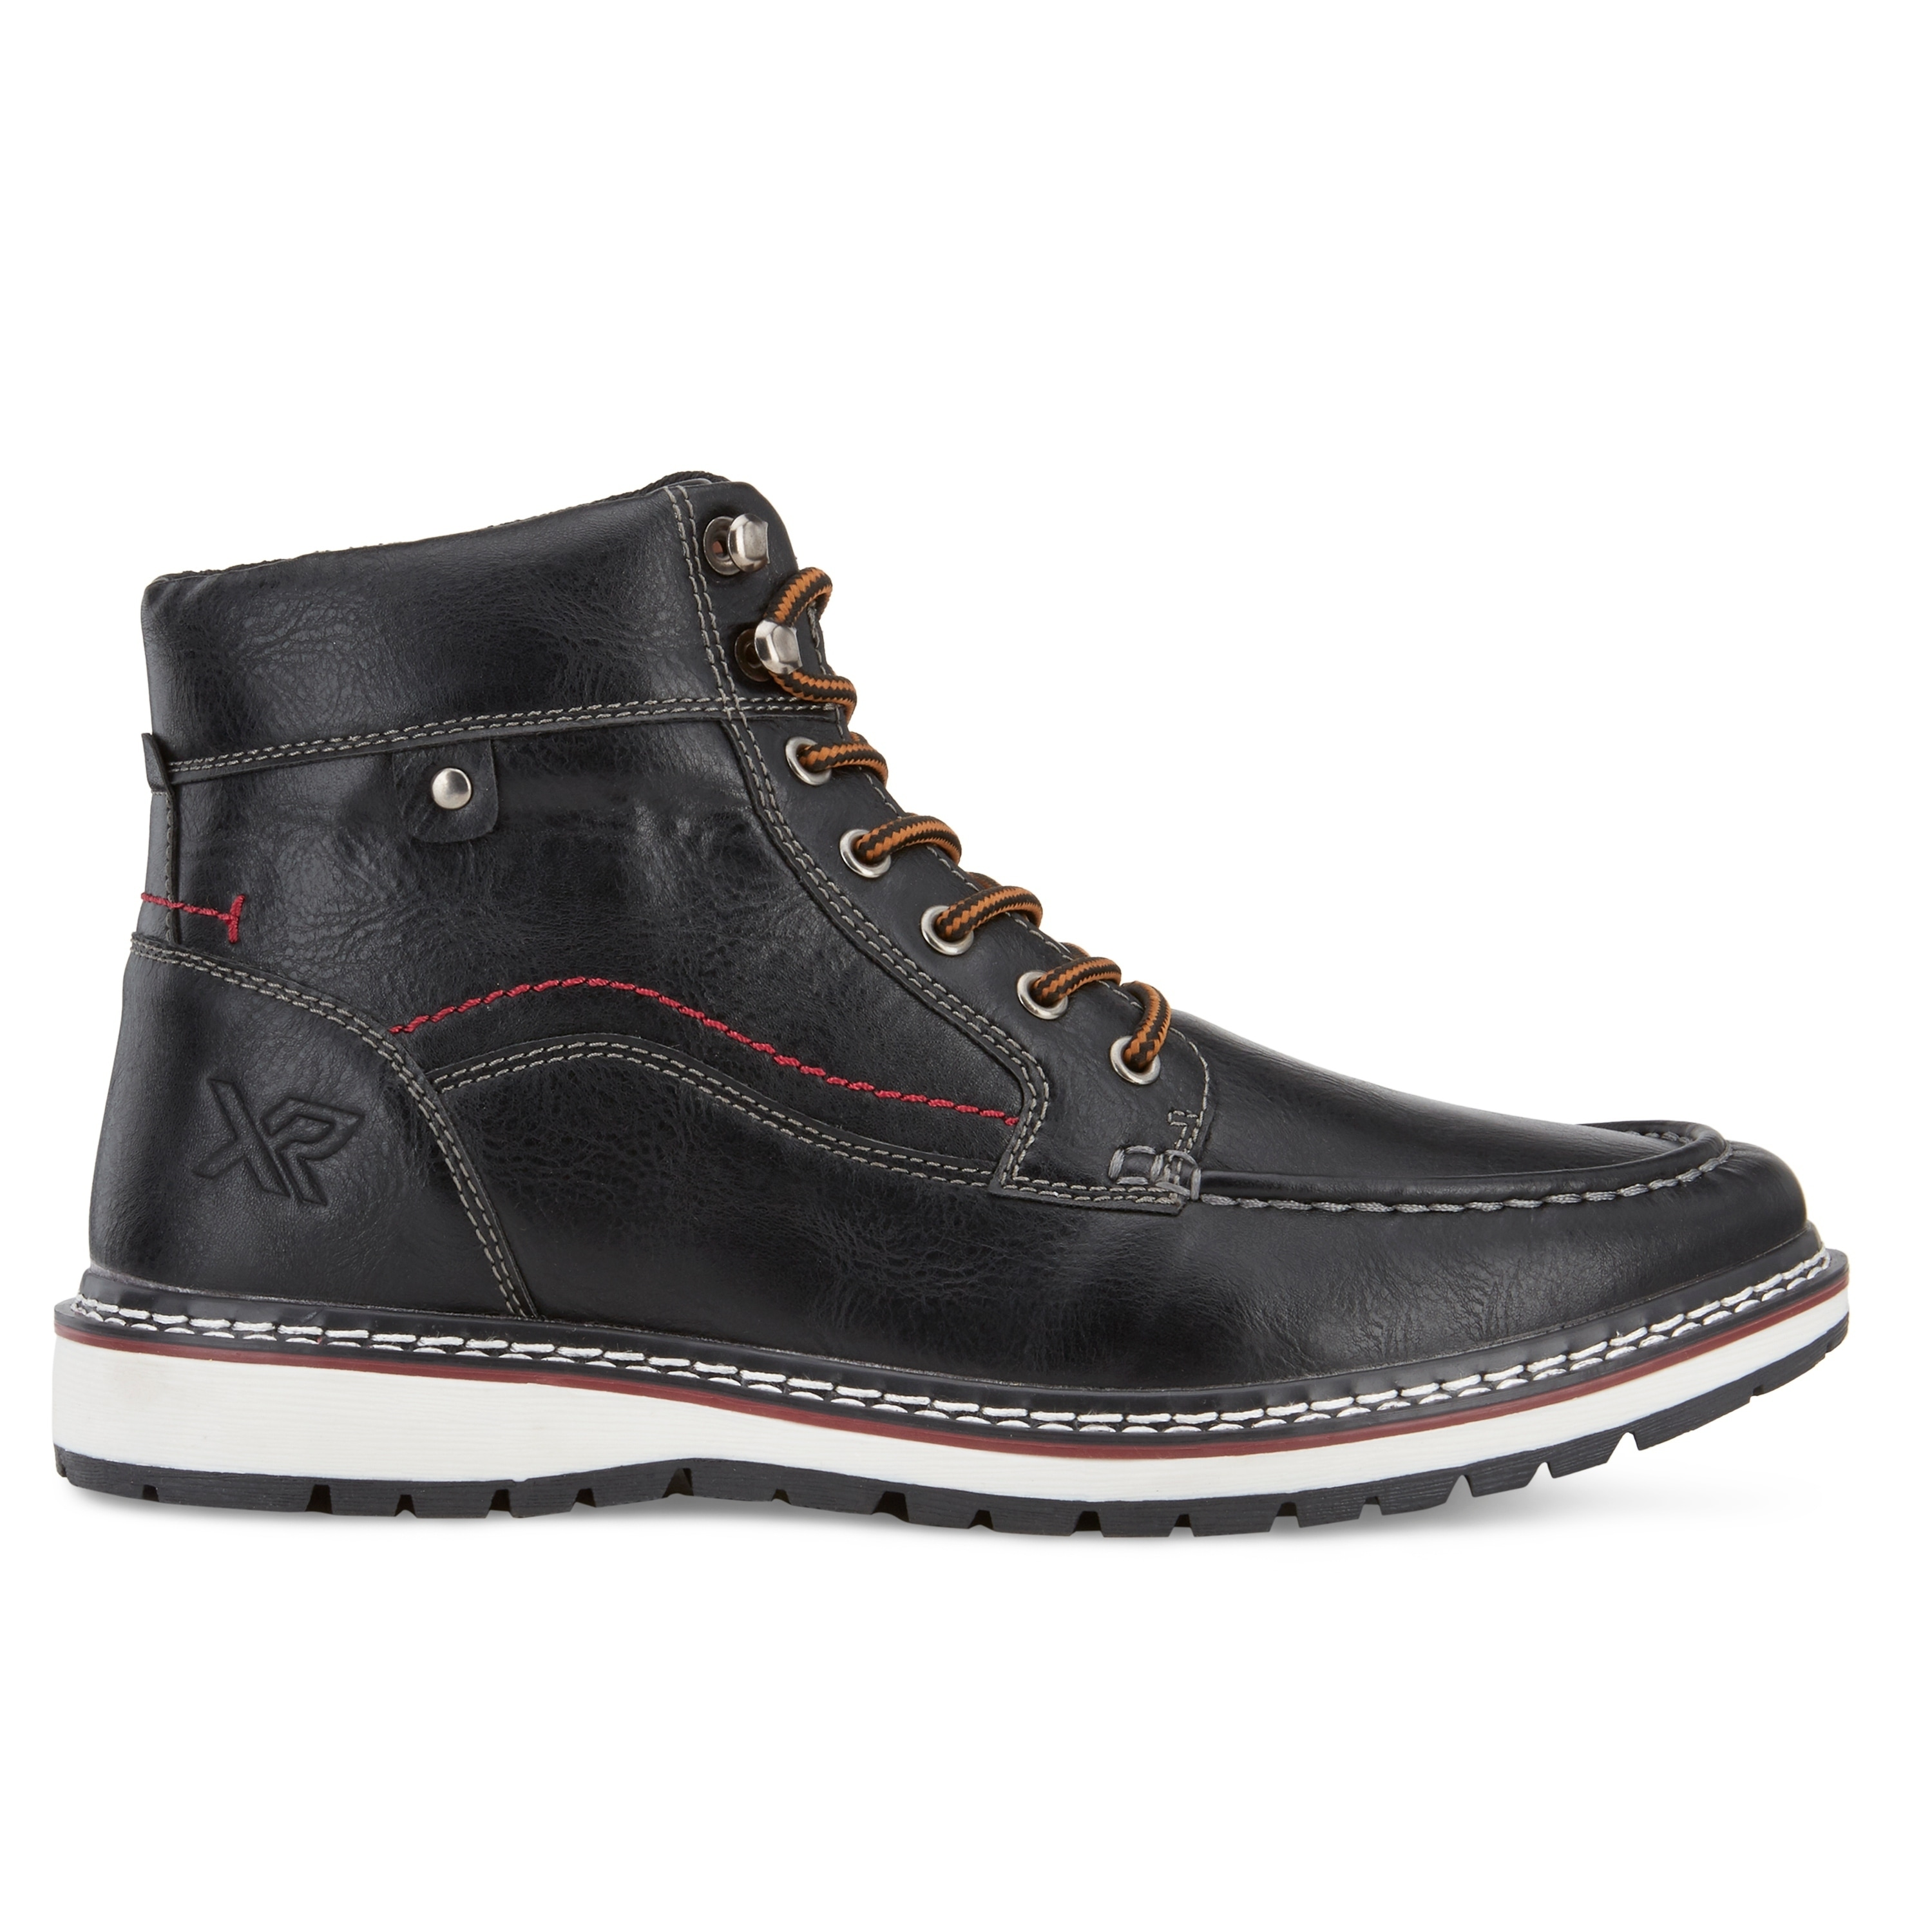 9c92b08d502 Xray Men's Dover High-top Boot